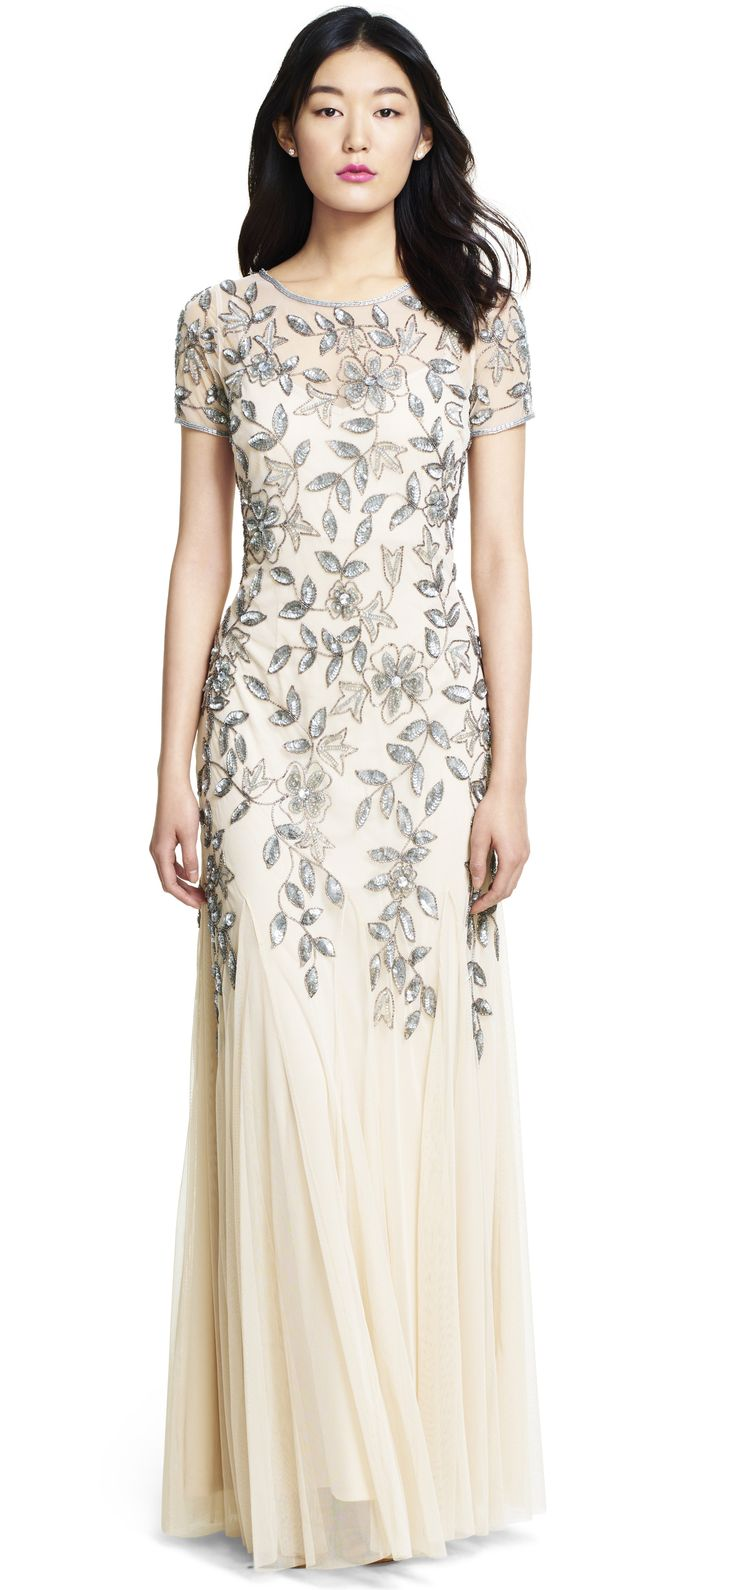 This truly glamorous gown features a delicately beaded floral pattern that cascades elegantly down the dress.